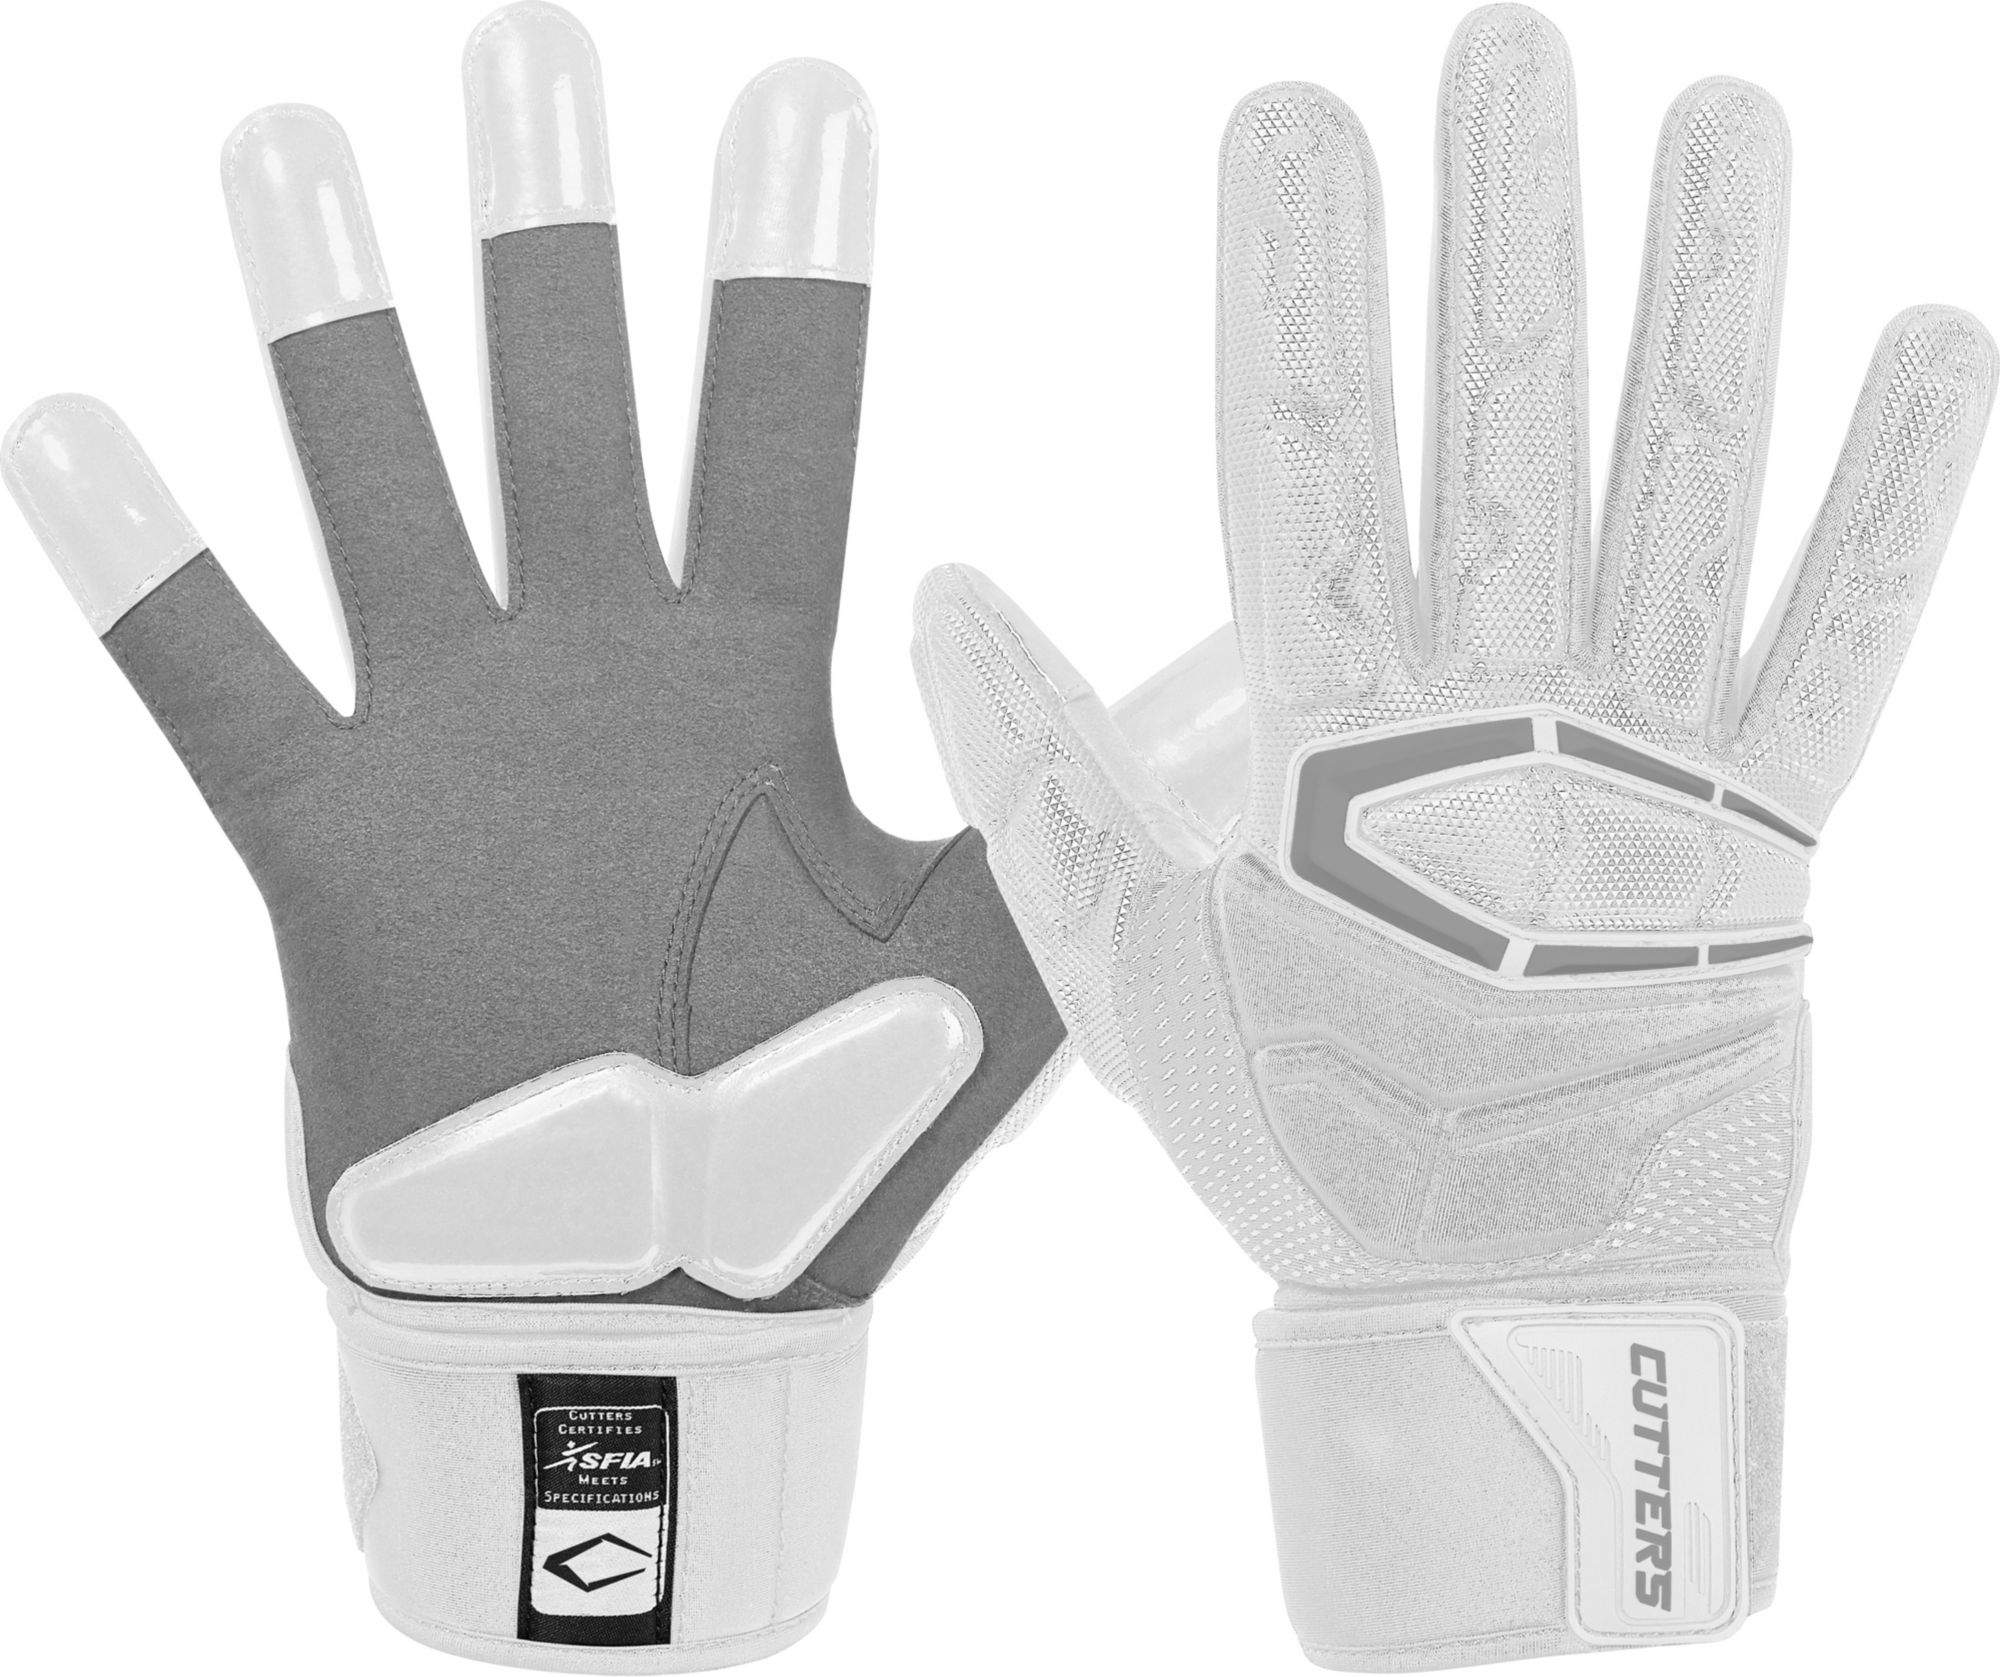 Grip Football Glove Cutters Game Day Padded Football Glove for Lineman and All- Purpose Player Youth /& Adult Sizes 1 Pair